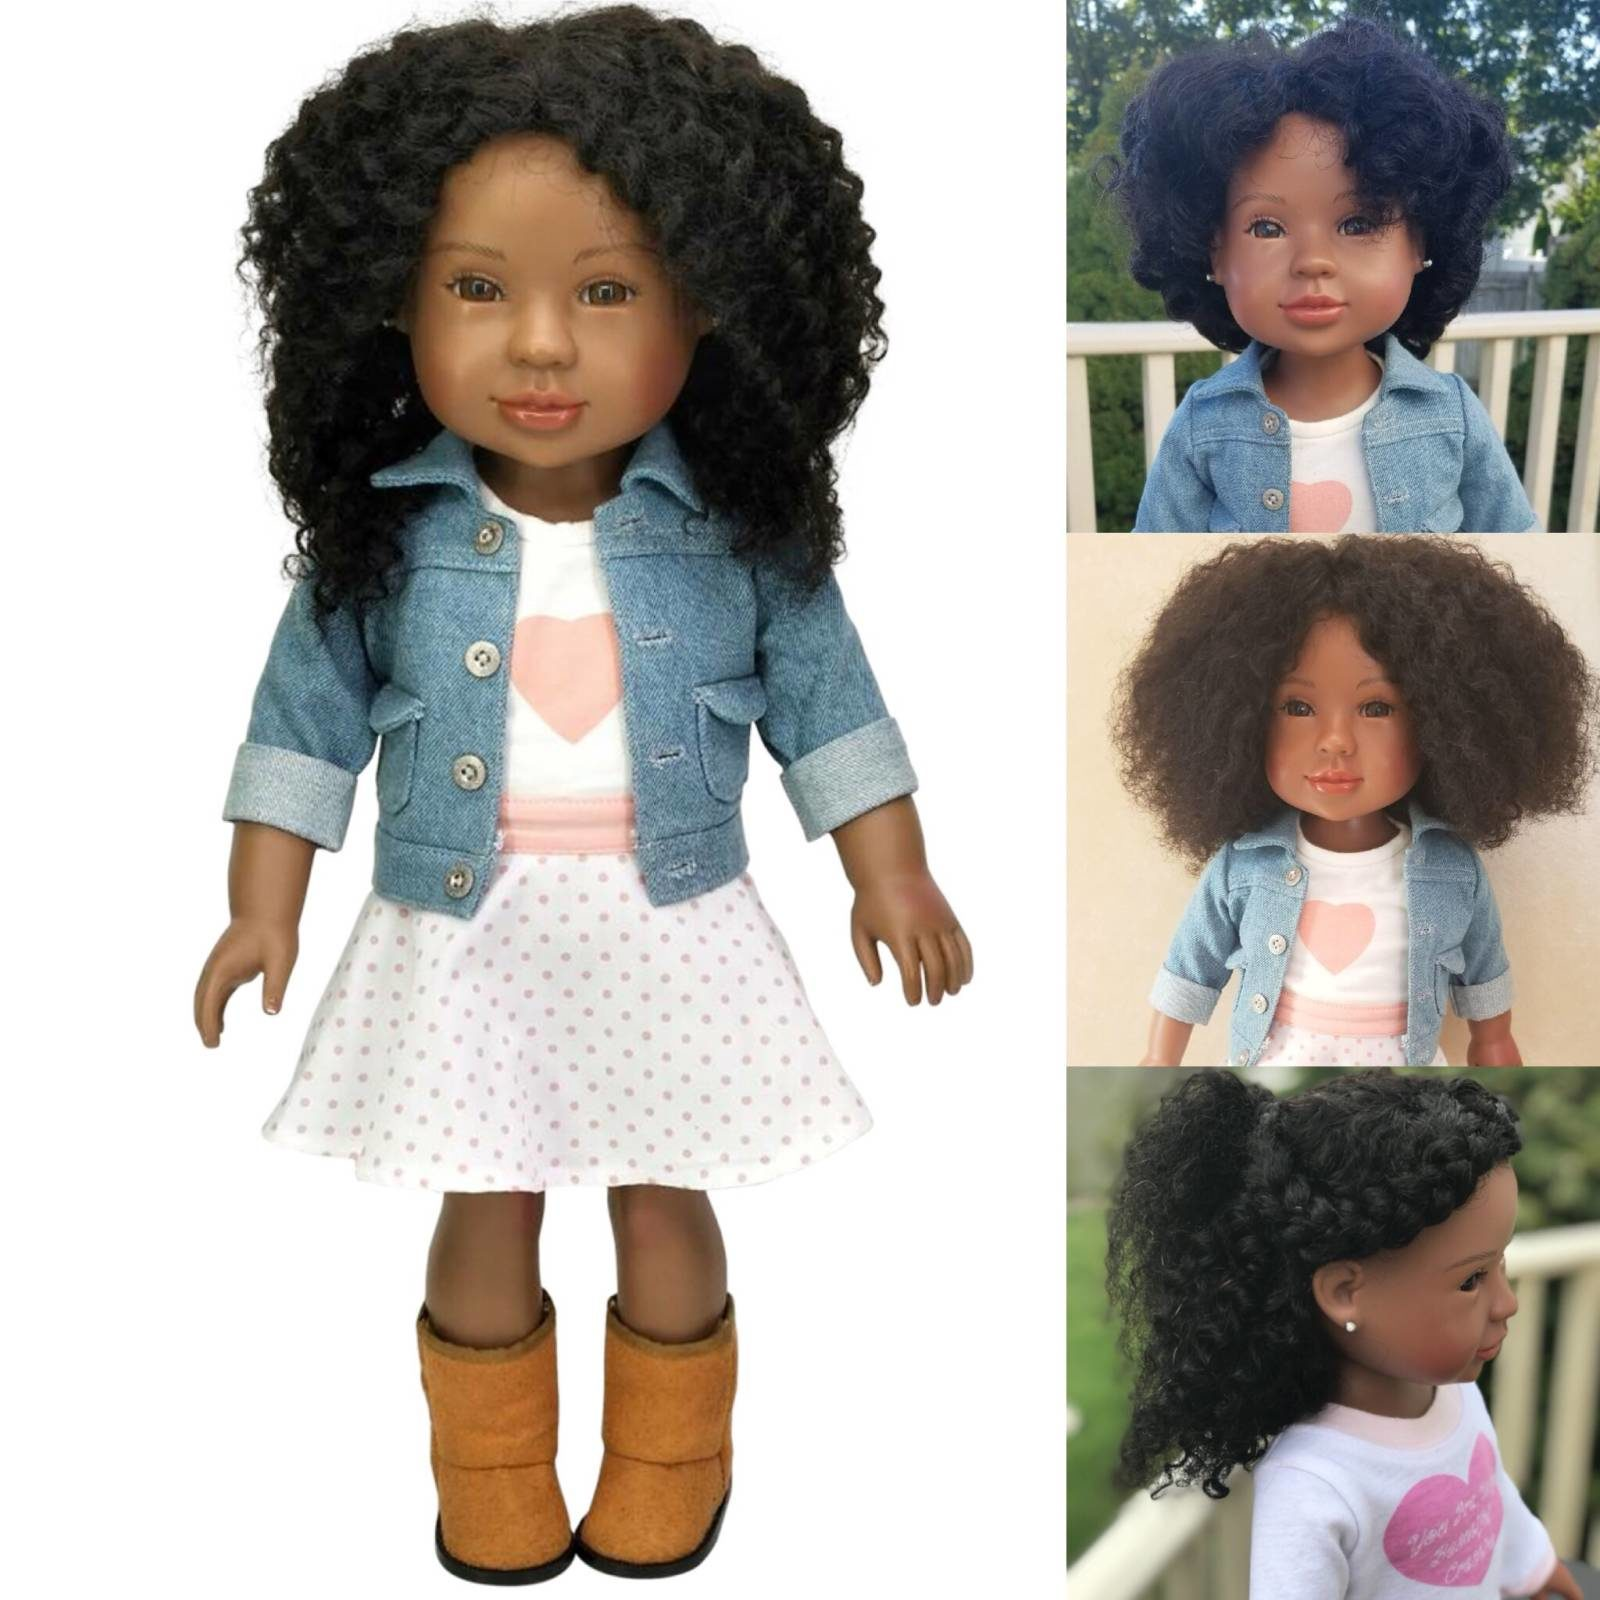 Brains and Beauty Dolls: They Have My Beautiful Black Features!